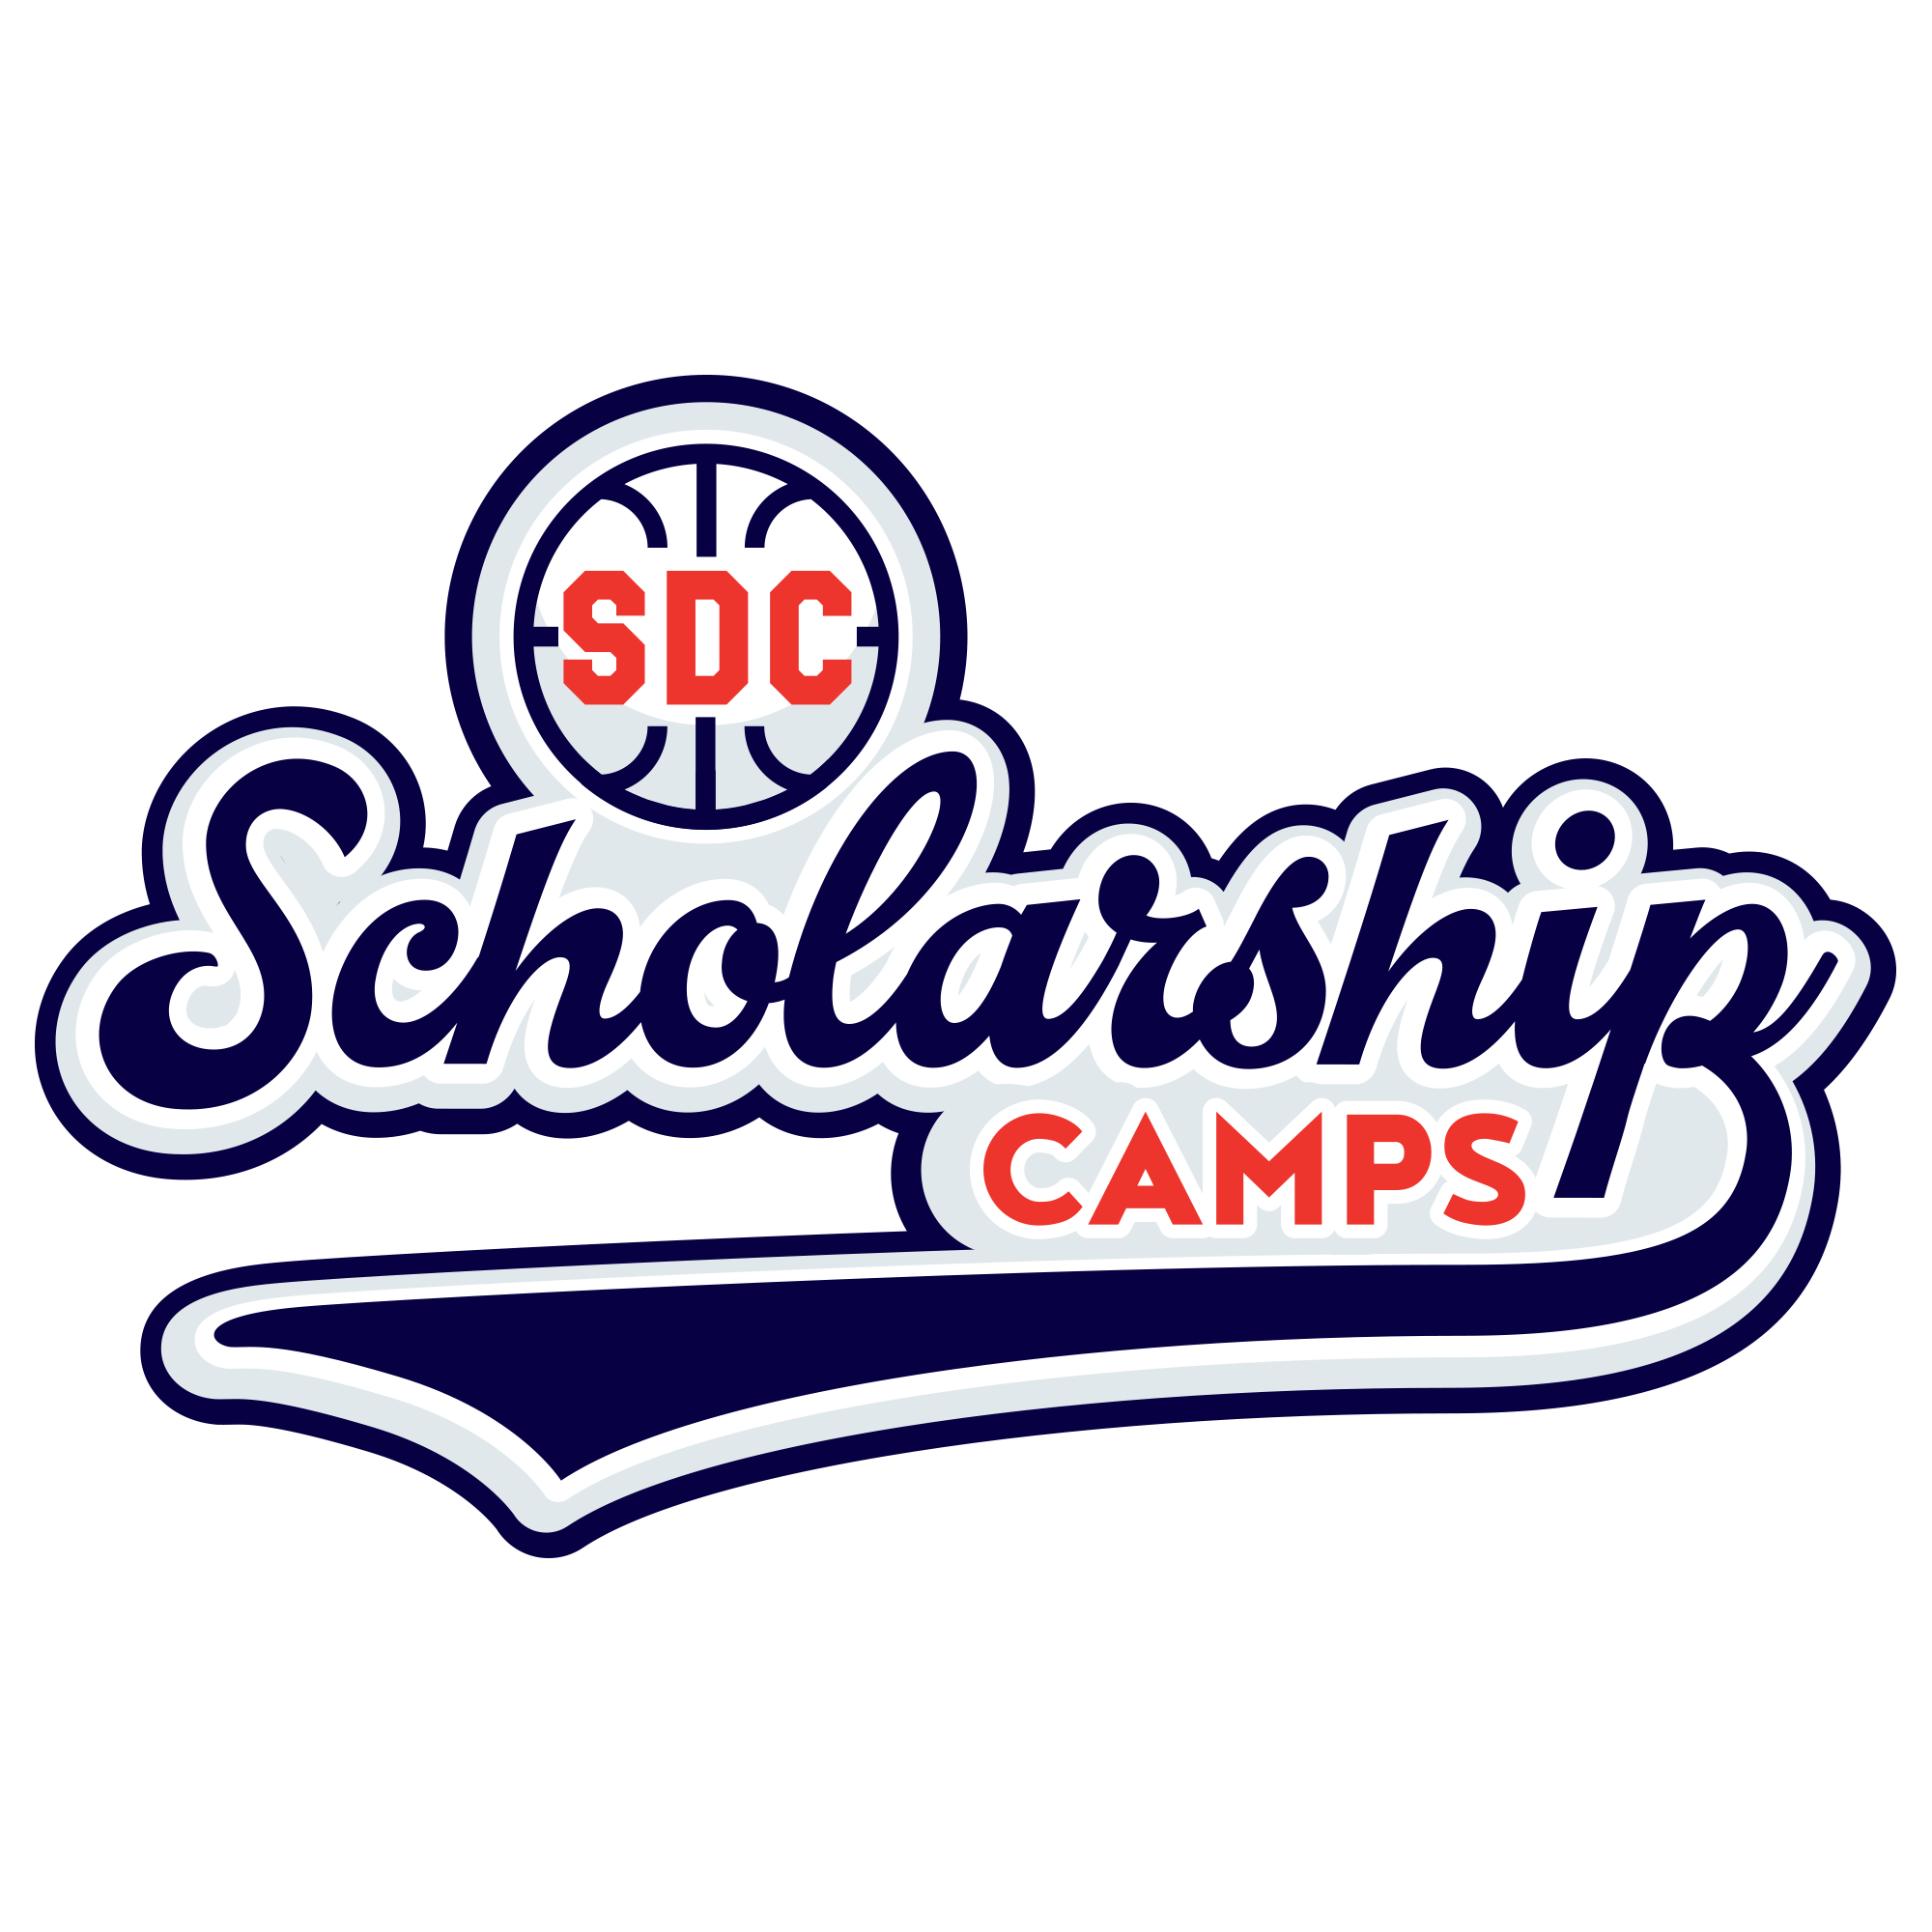 SDC_camps_logo.png